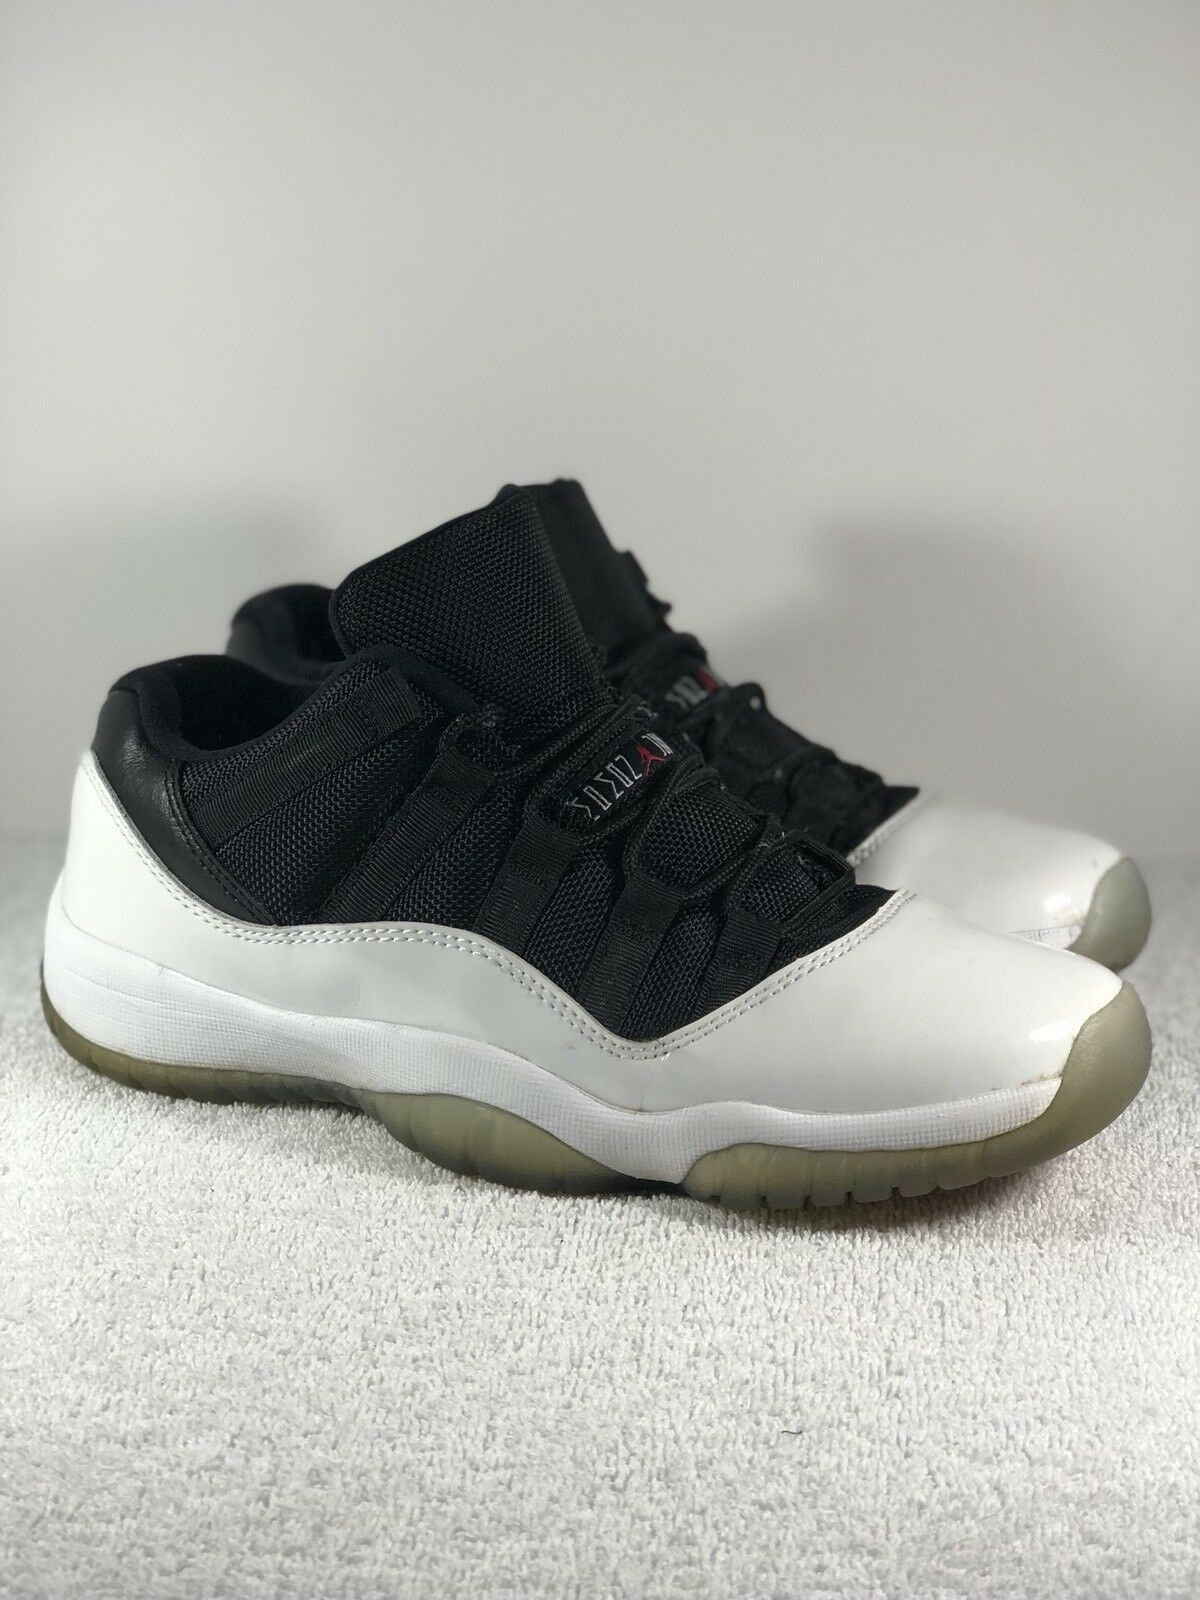 Seasonal clearance sale Nike Air Jordan 11 XI Low TUXEDO Boys Comfortable